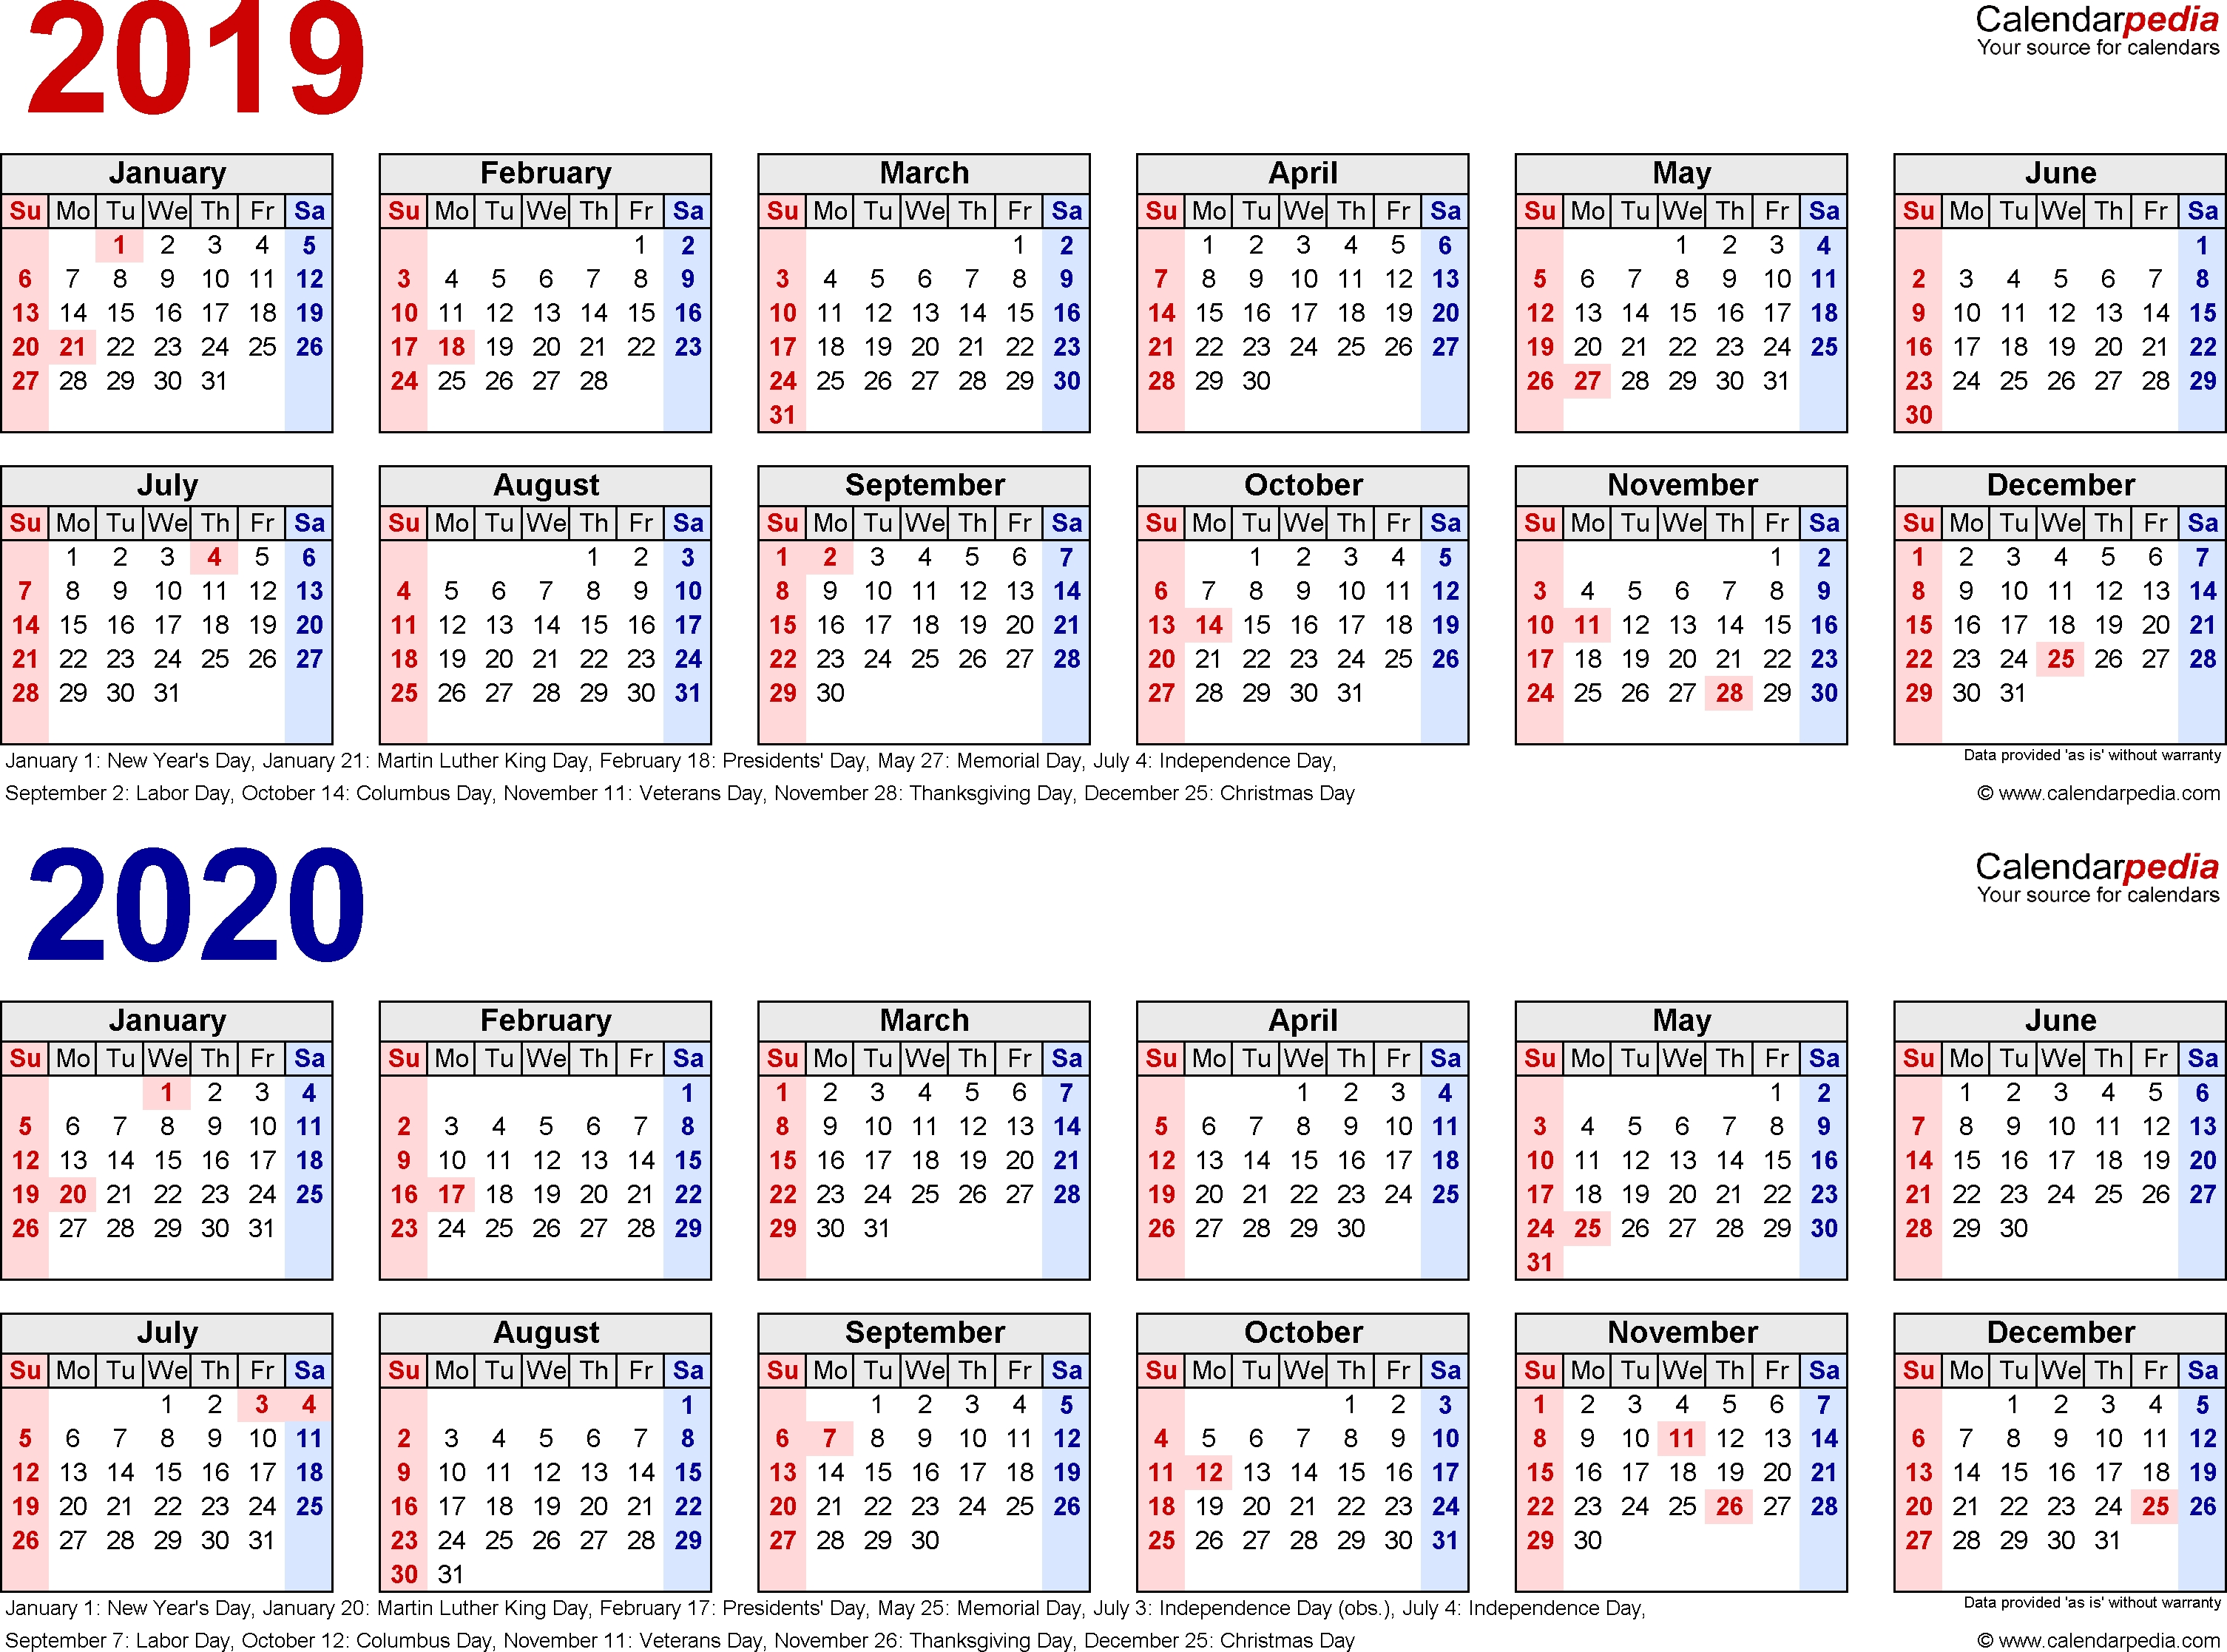 2019-2020 Calendar - Free Printable Two-Year Excel Calendars pertaining to 2019 2020 Box Calender